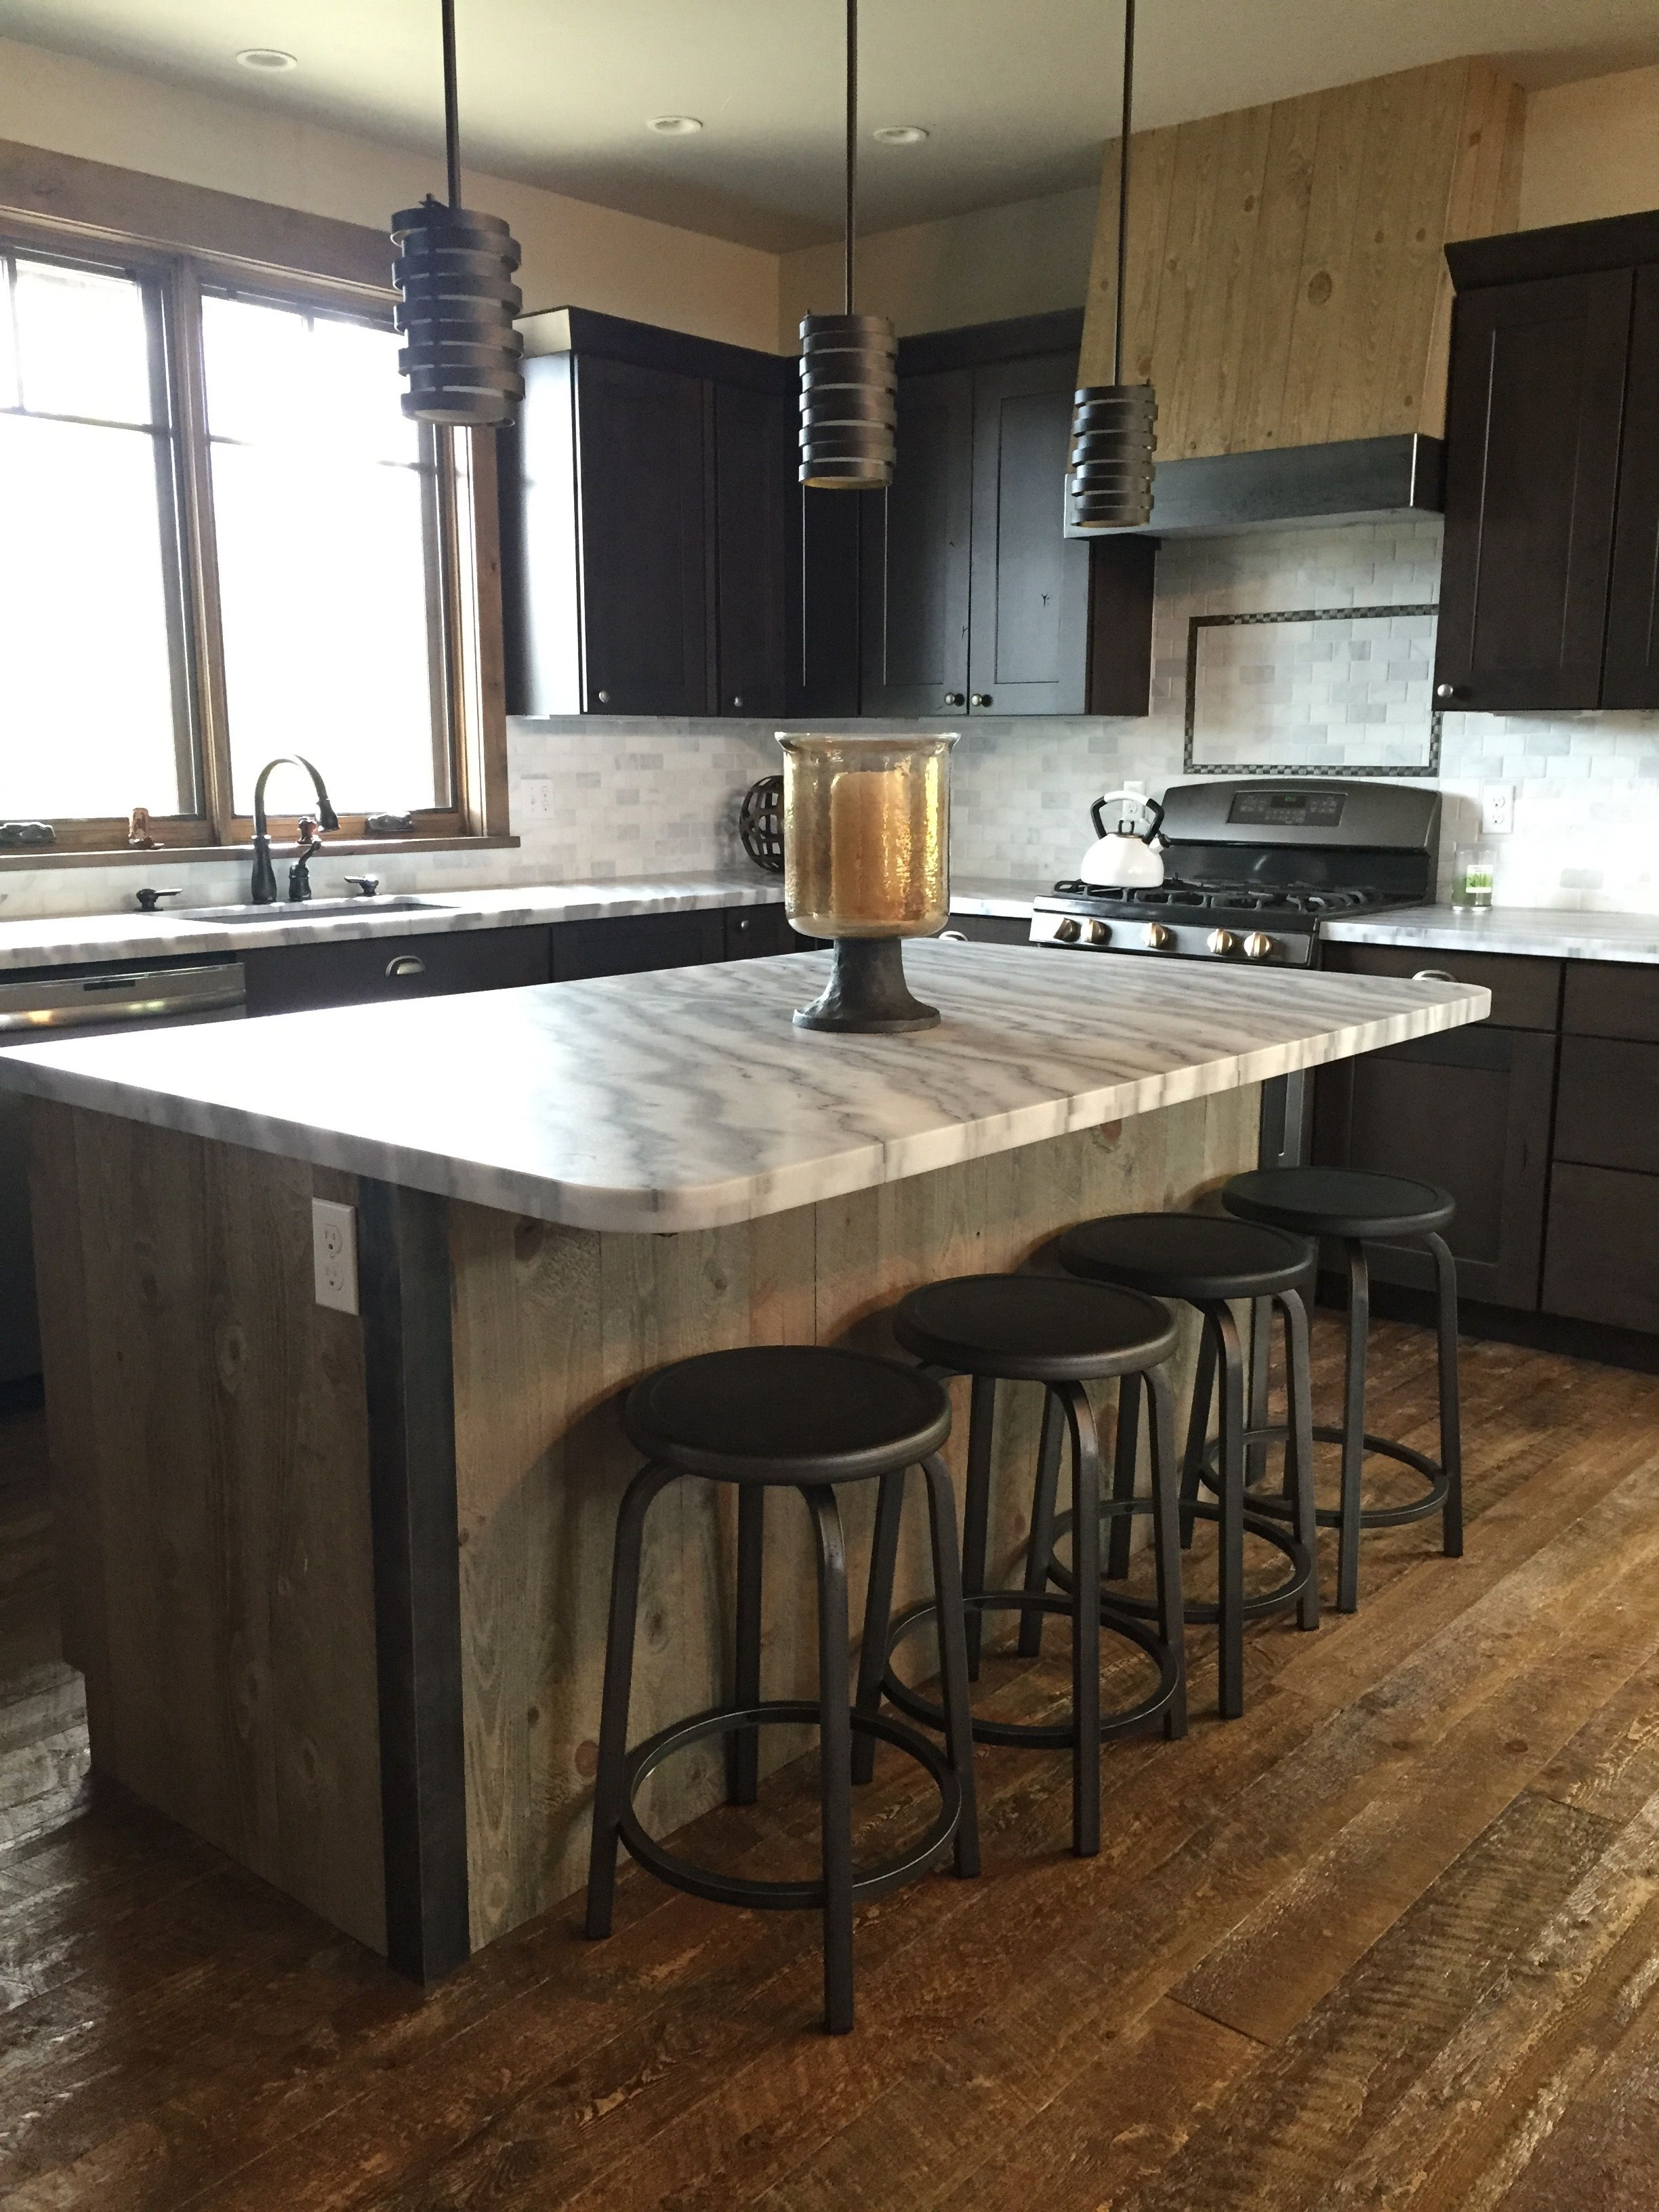 Kitchen Island Wrapped In Ghost Wood Kitchen Islands For Sale Freestanding Kitchen Small Kitchen Island